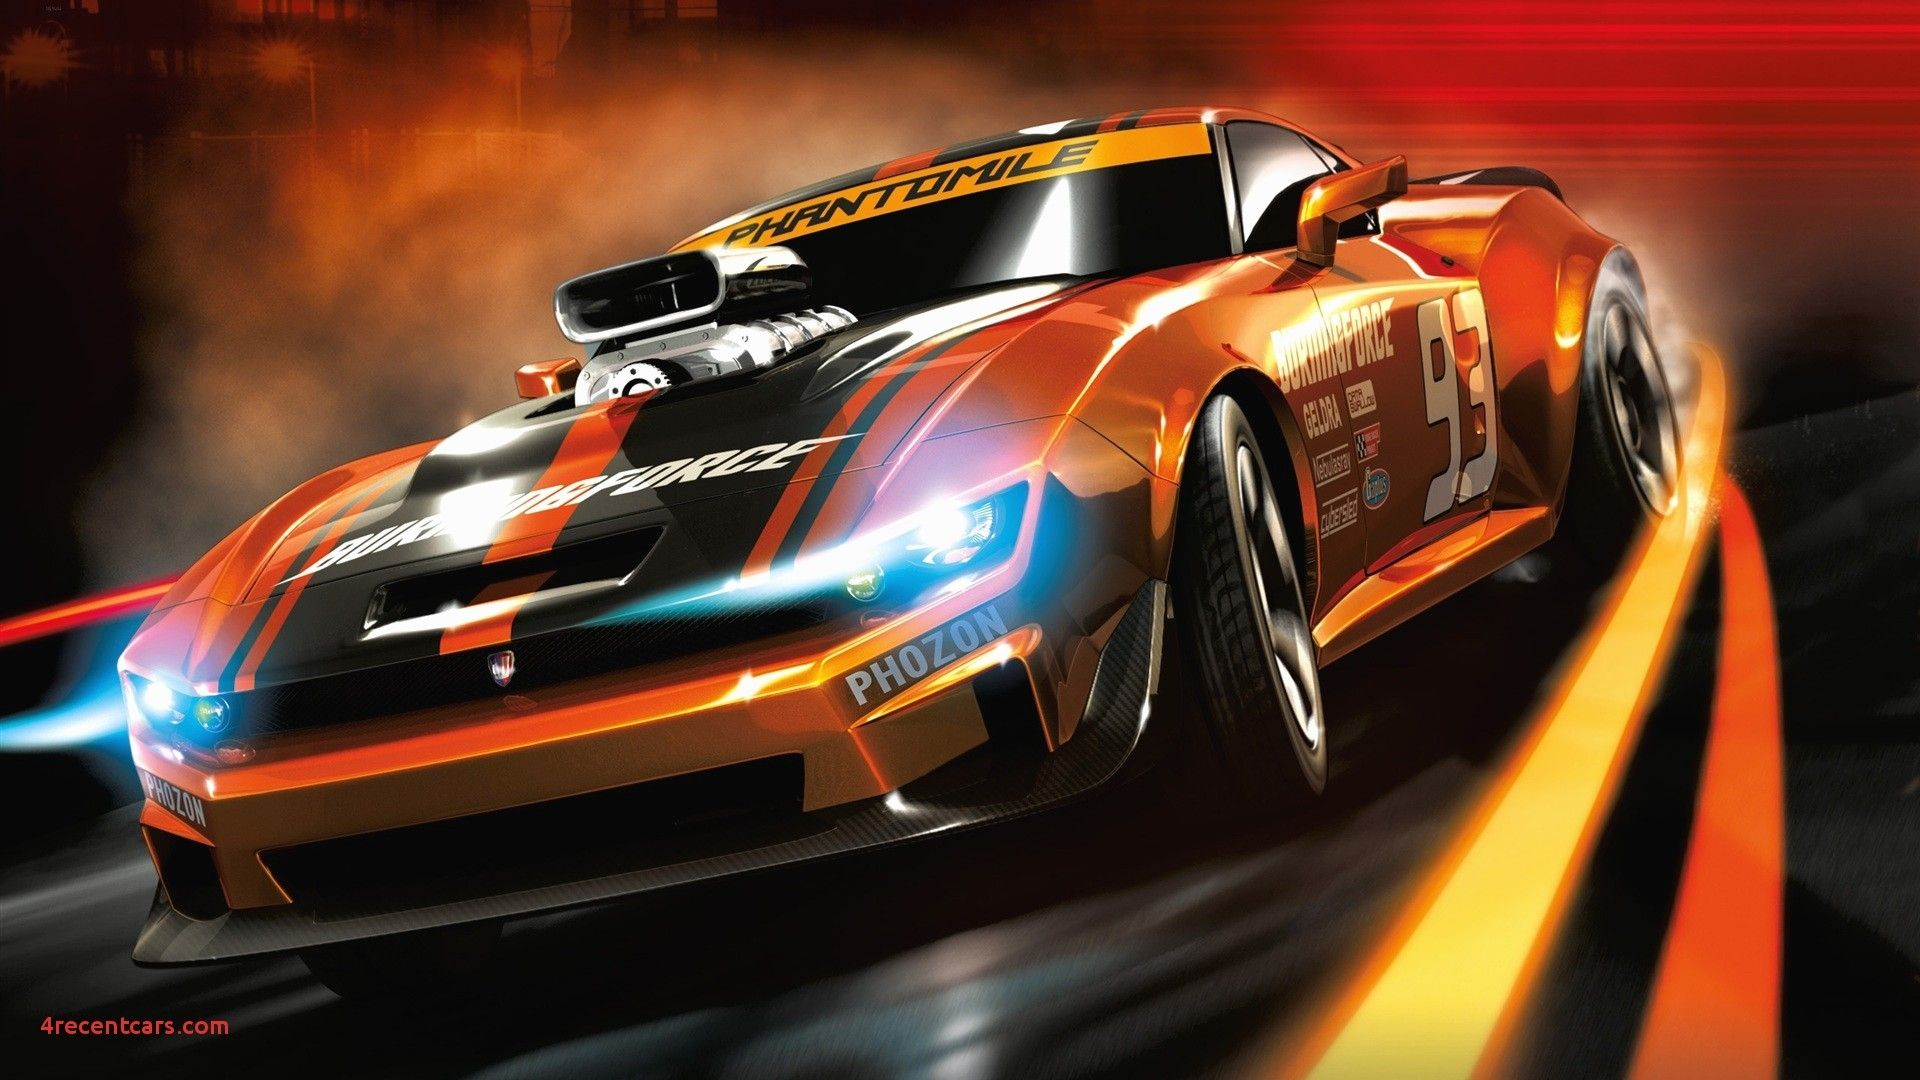 Top Free Sick Cars Backgrounds